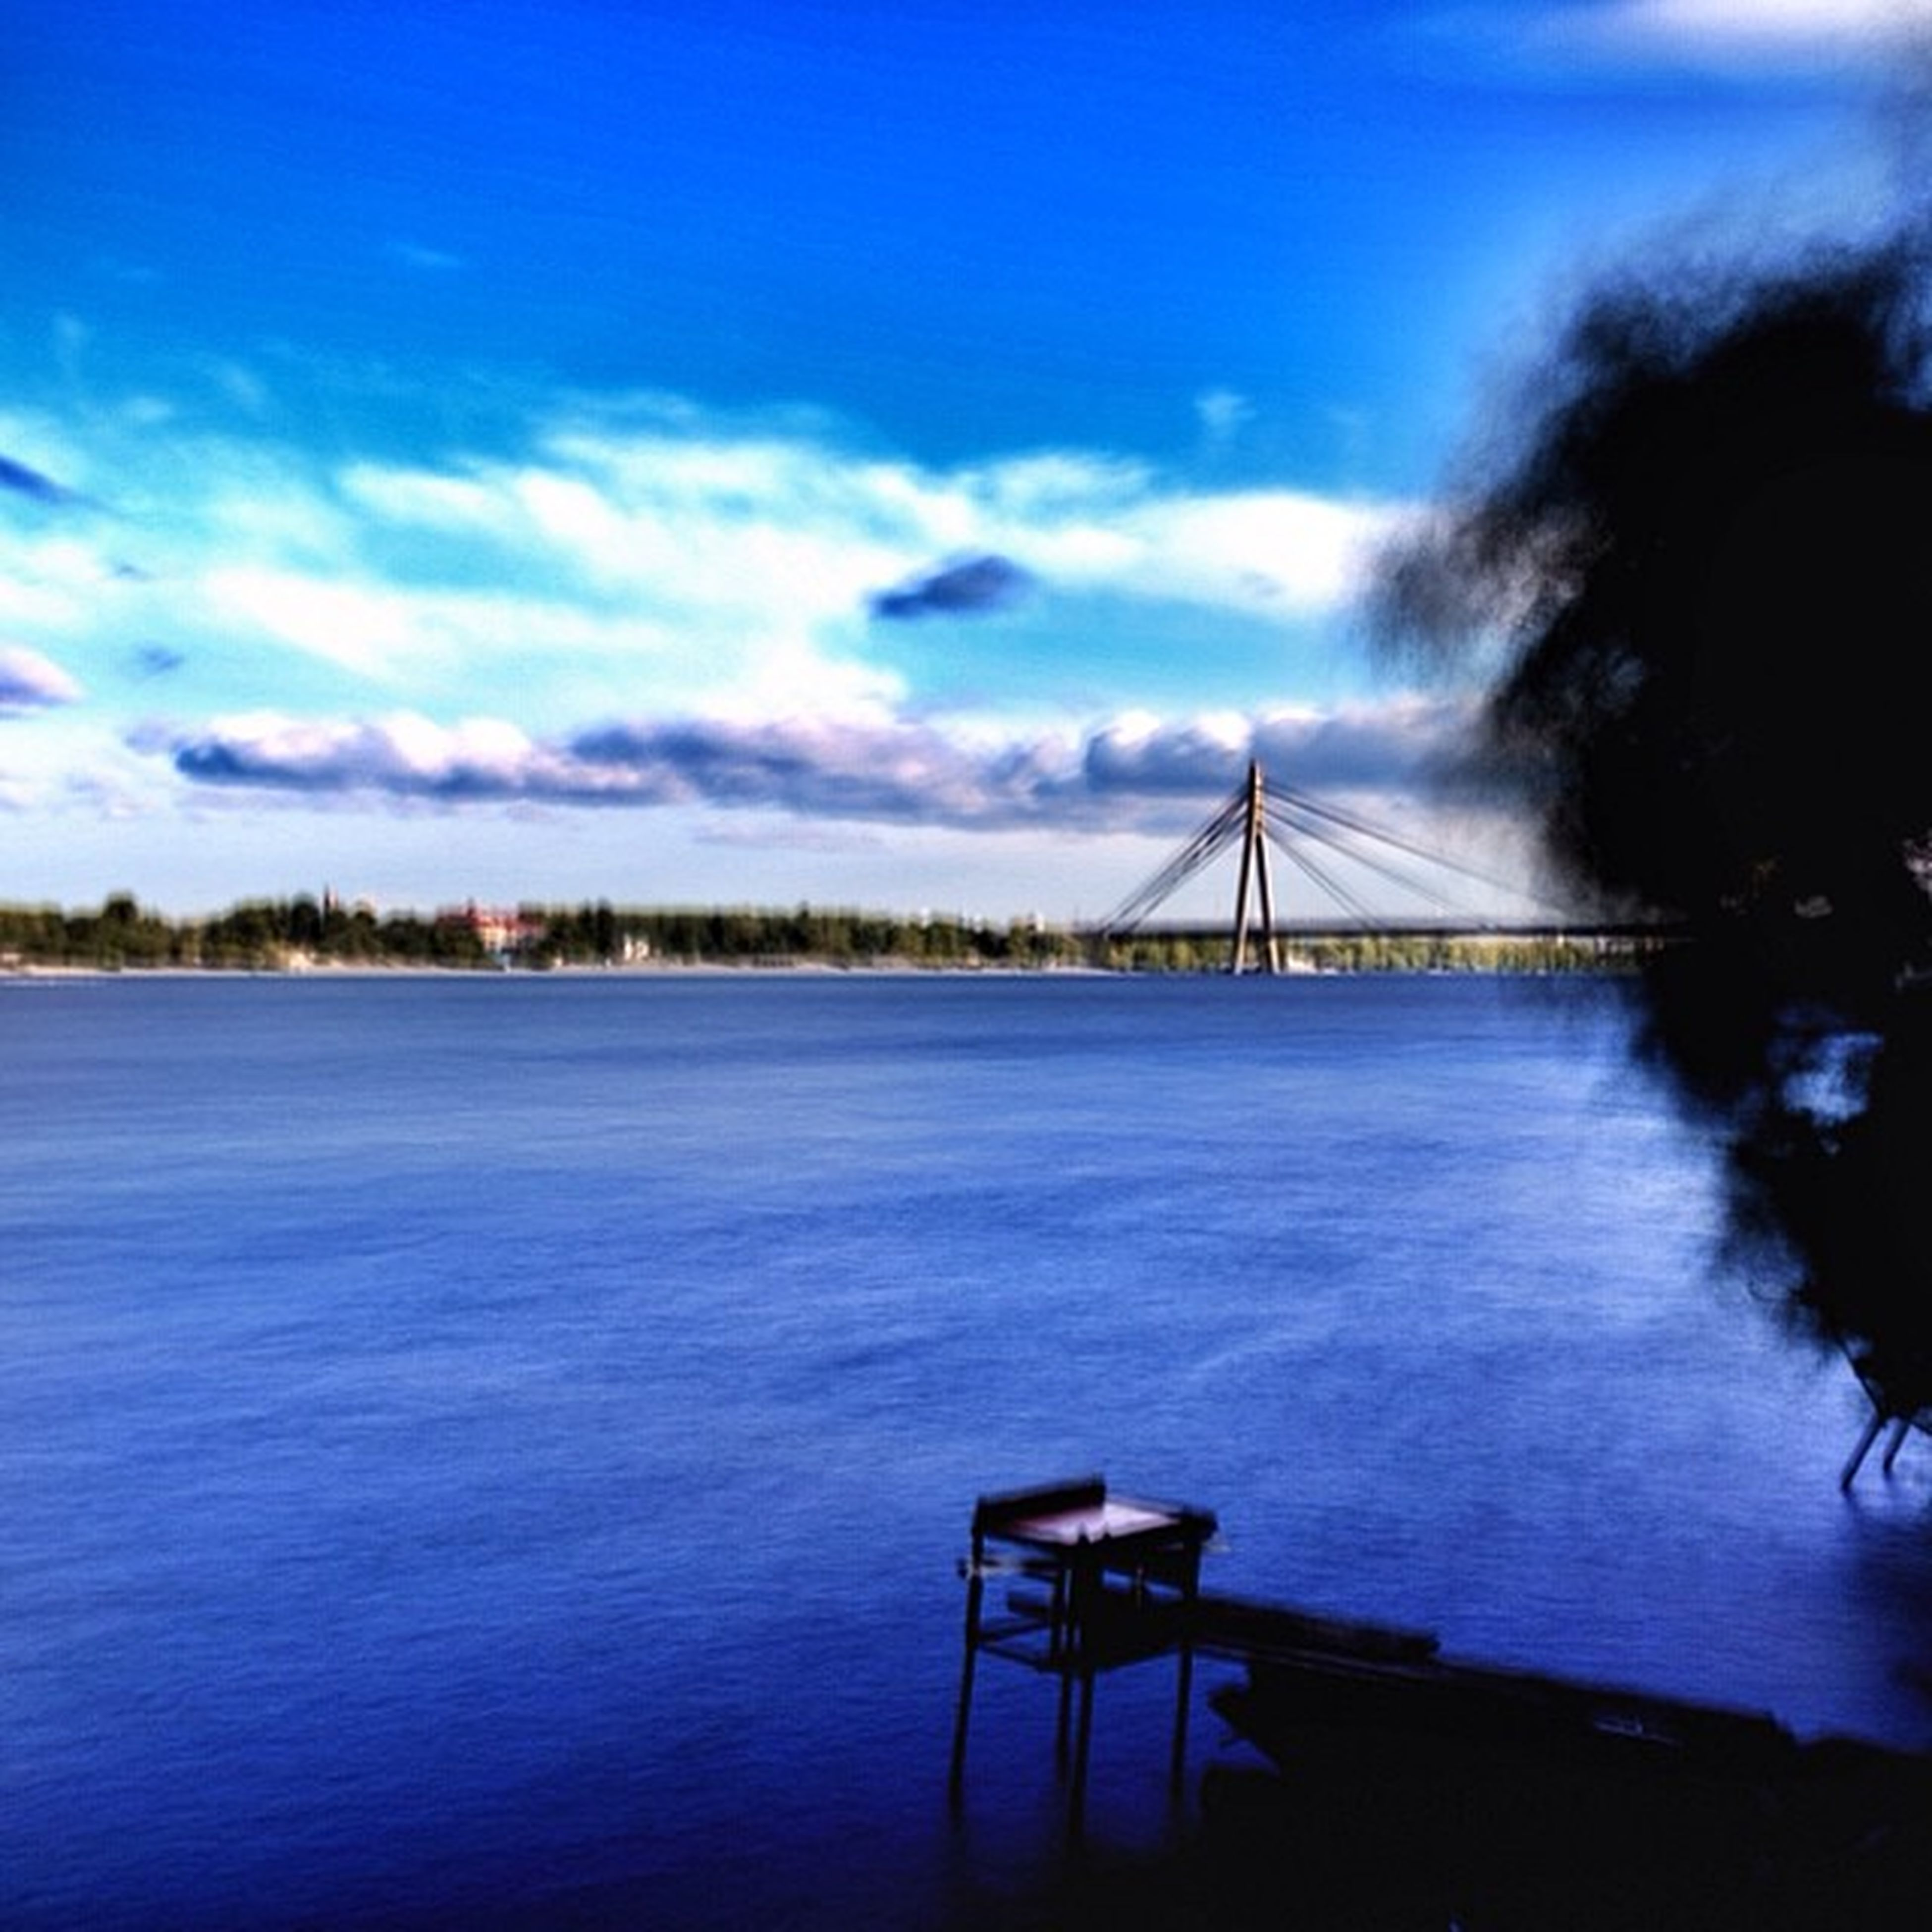 water, sky, blue, built structure, cloud - sky, sea, architecture, tranquility, tranquil scene, cloud, scenics, nature, beauty in nature, cloudy, connection, railing, river, travel destinations, bridge - man made structure, outdoors